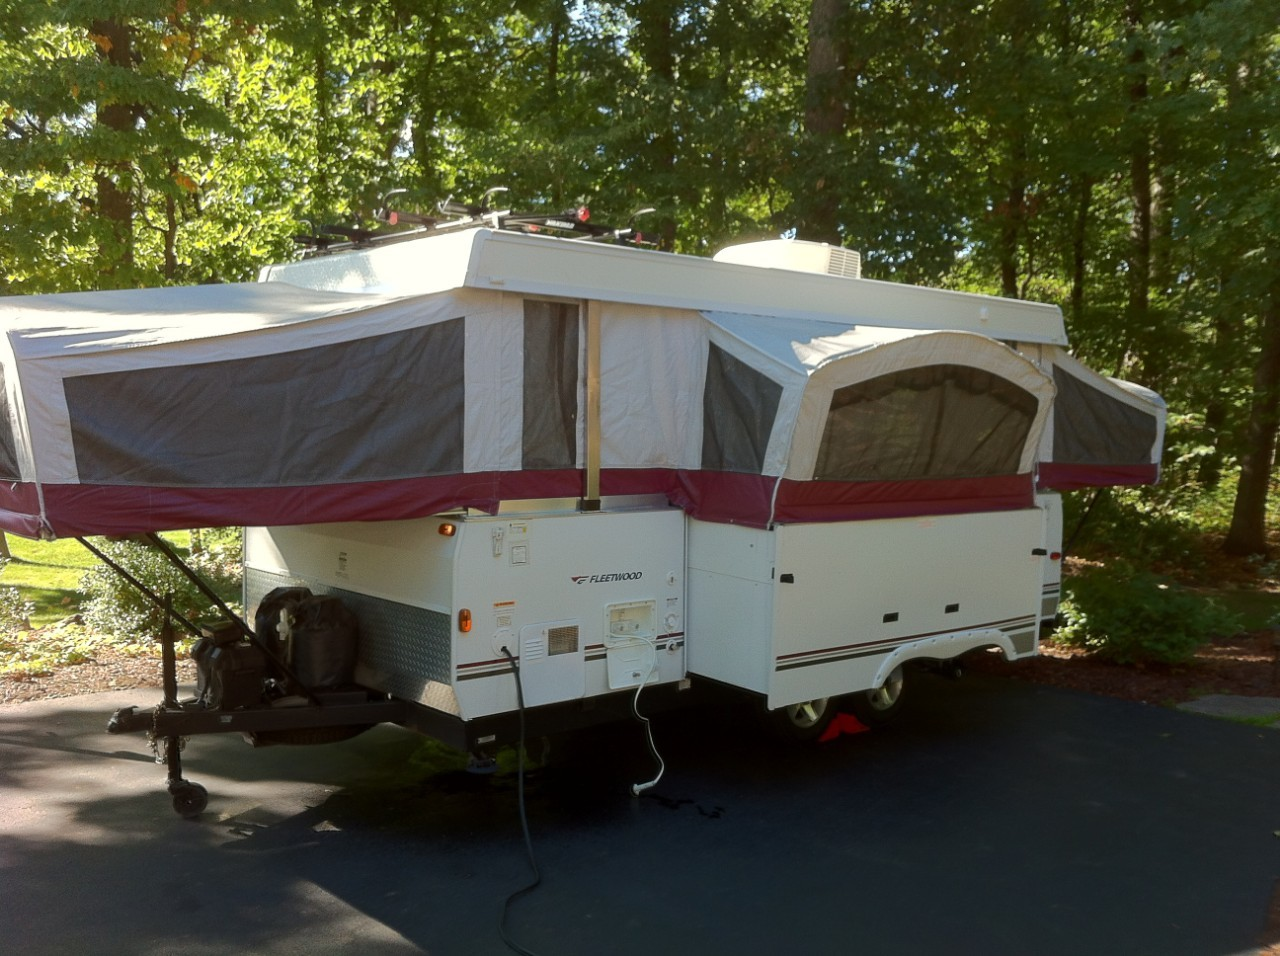 Salon Camping Car Lyon Howell Rvs For Sale 11 Rvs Near Me Rv Trader